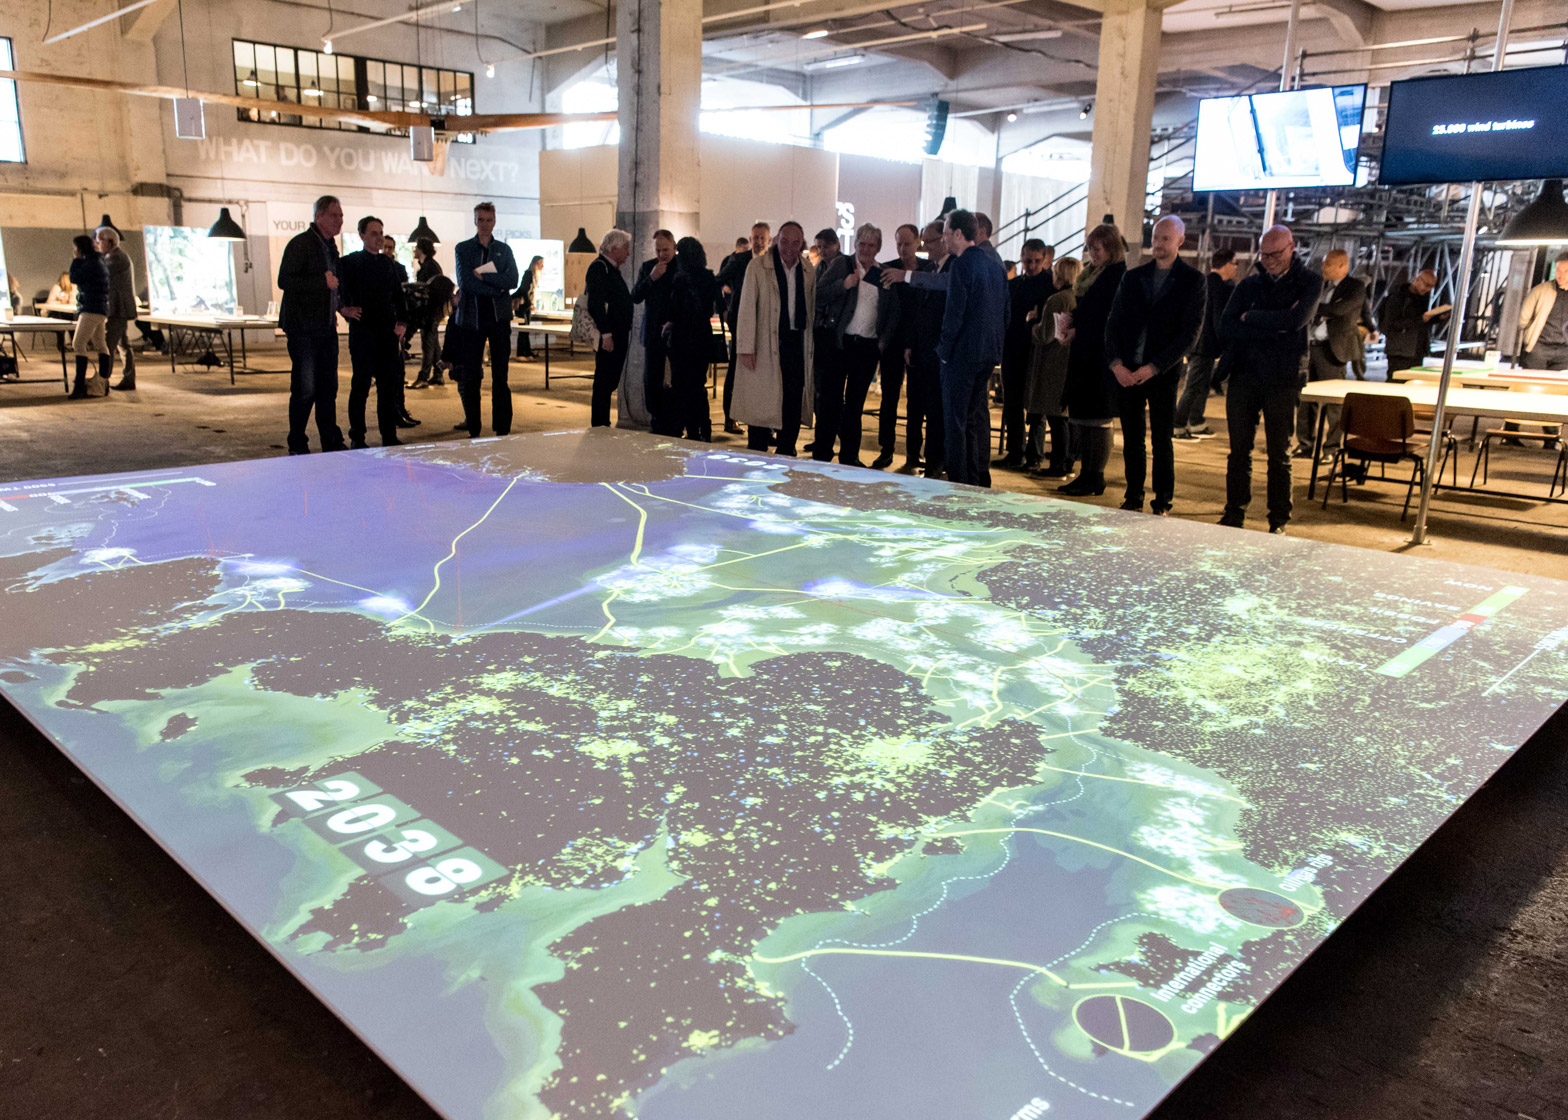 Photograph by Hans Tak Rotterdam biennale 2016 smart cities installation